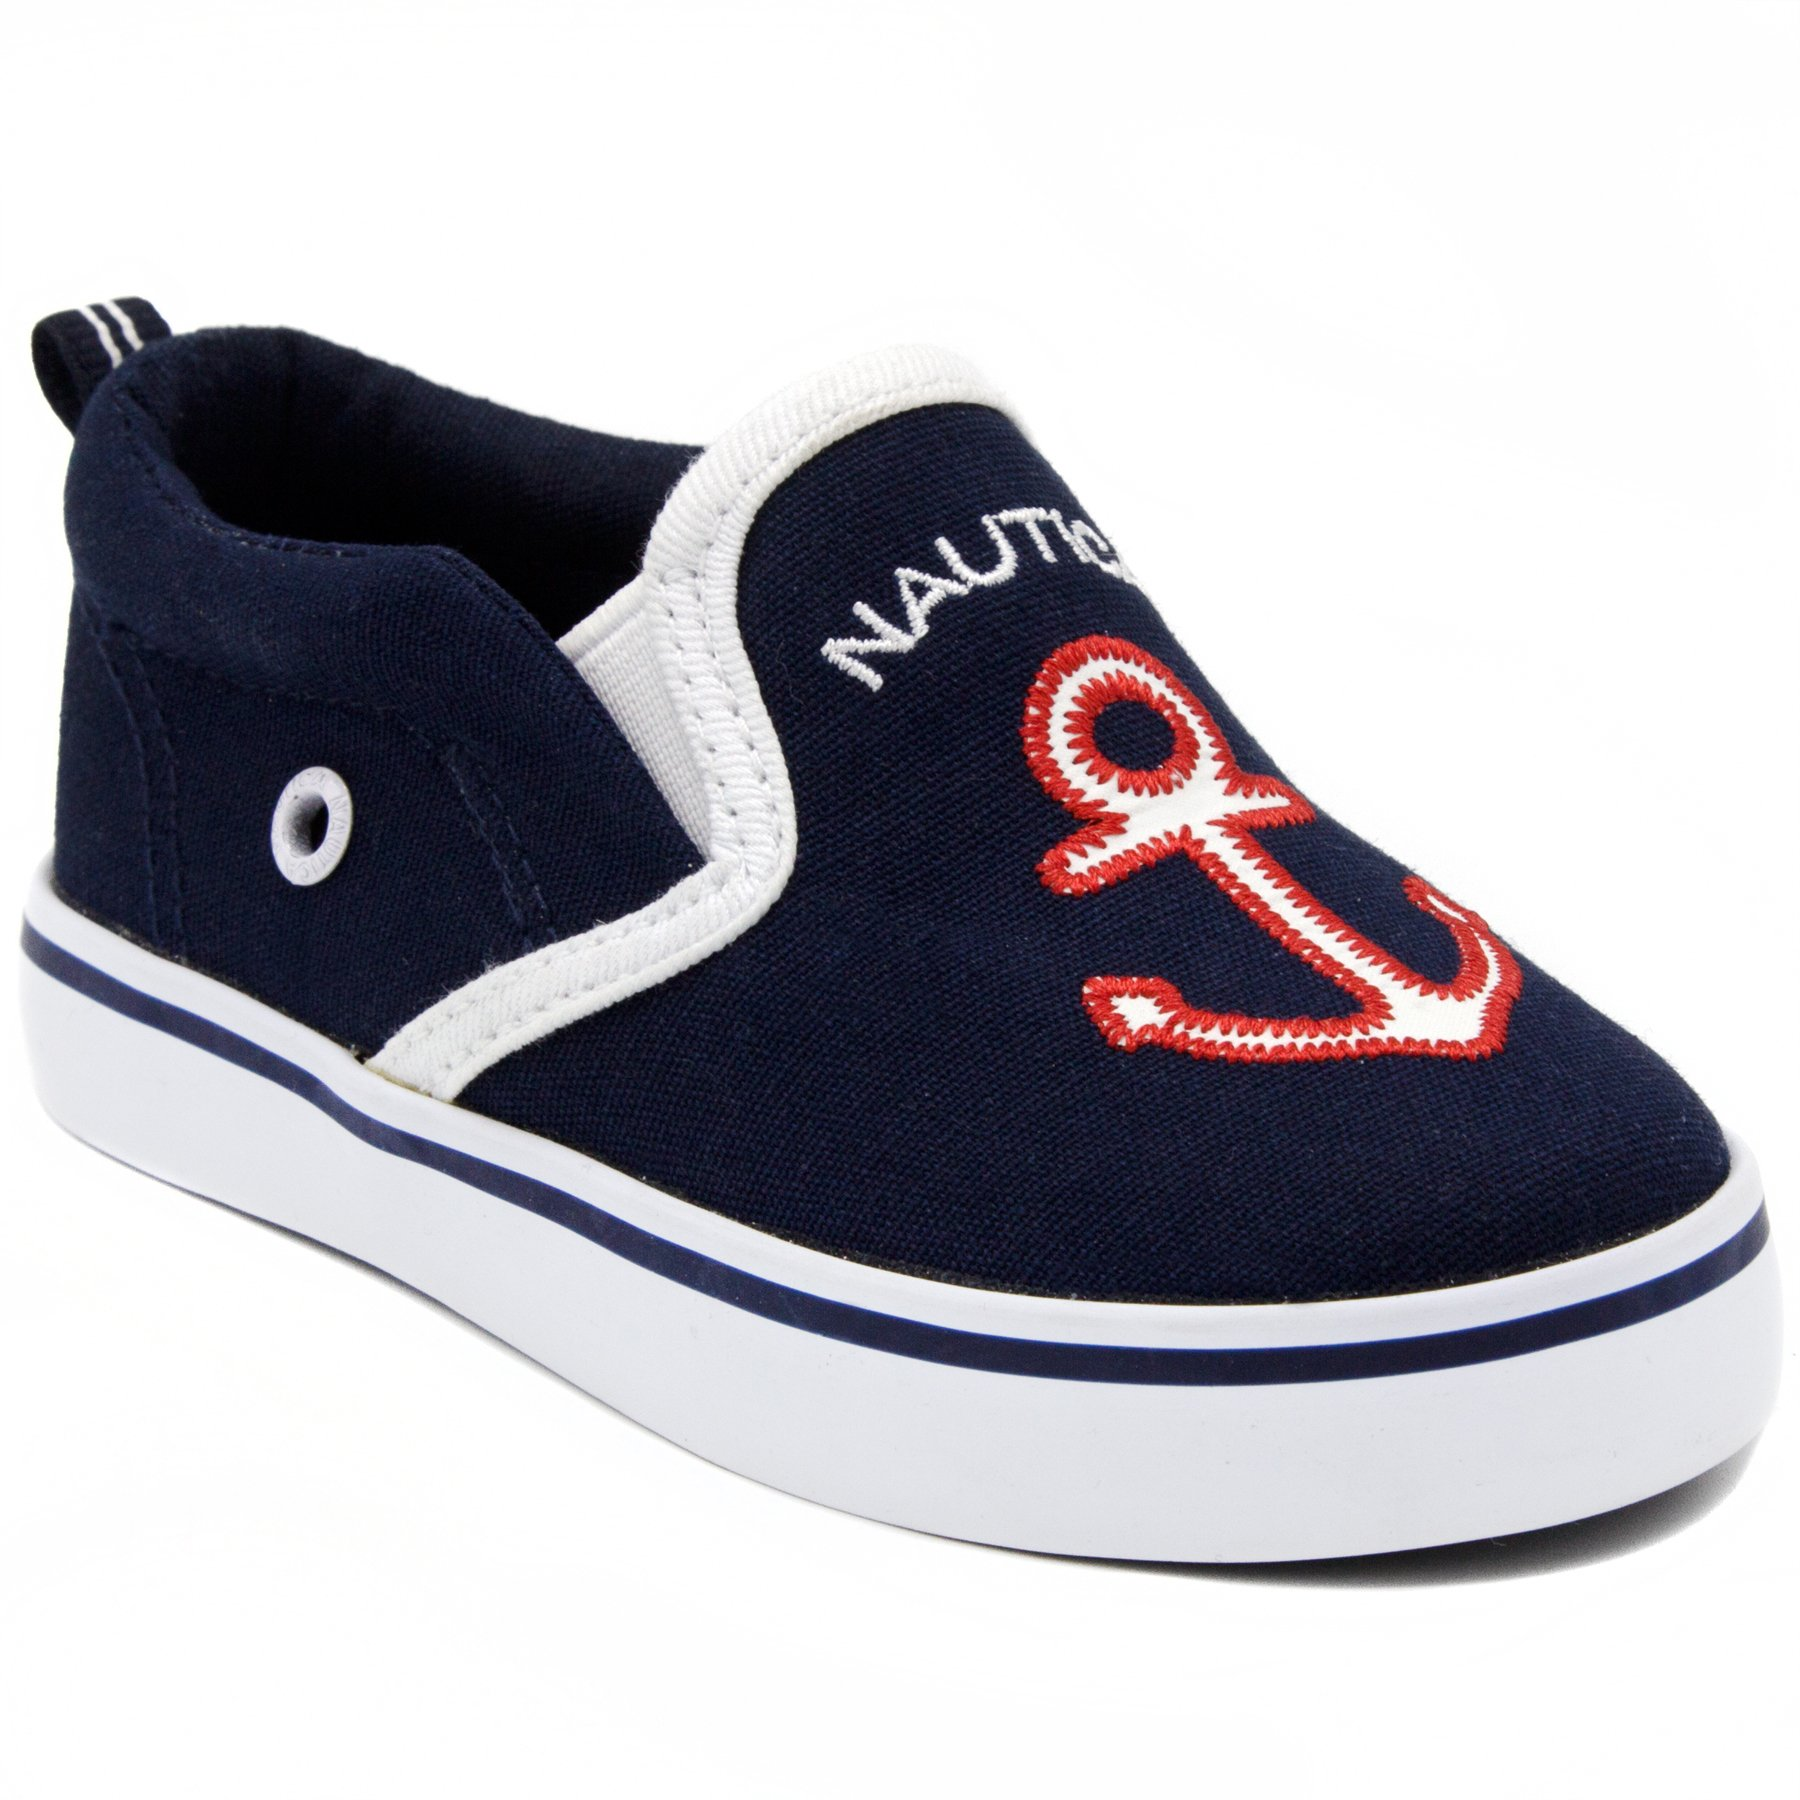 Nautica Akeley Toddler Canvas Sneaker Slip-On Casual Shoes-Navy Anchor-8